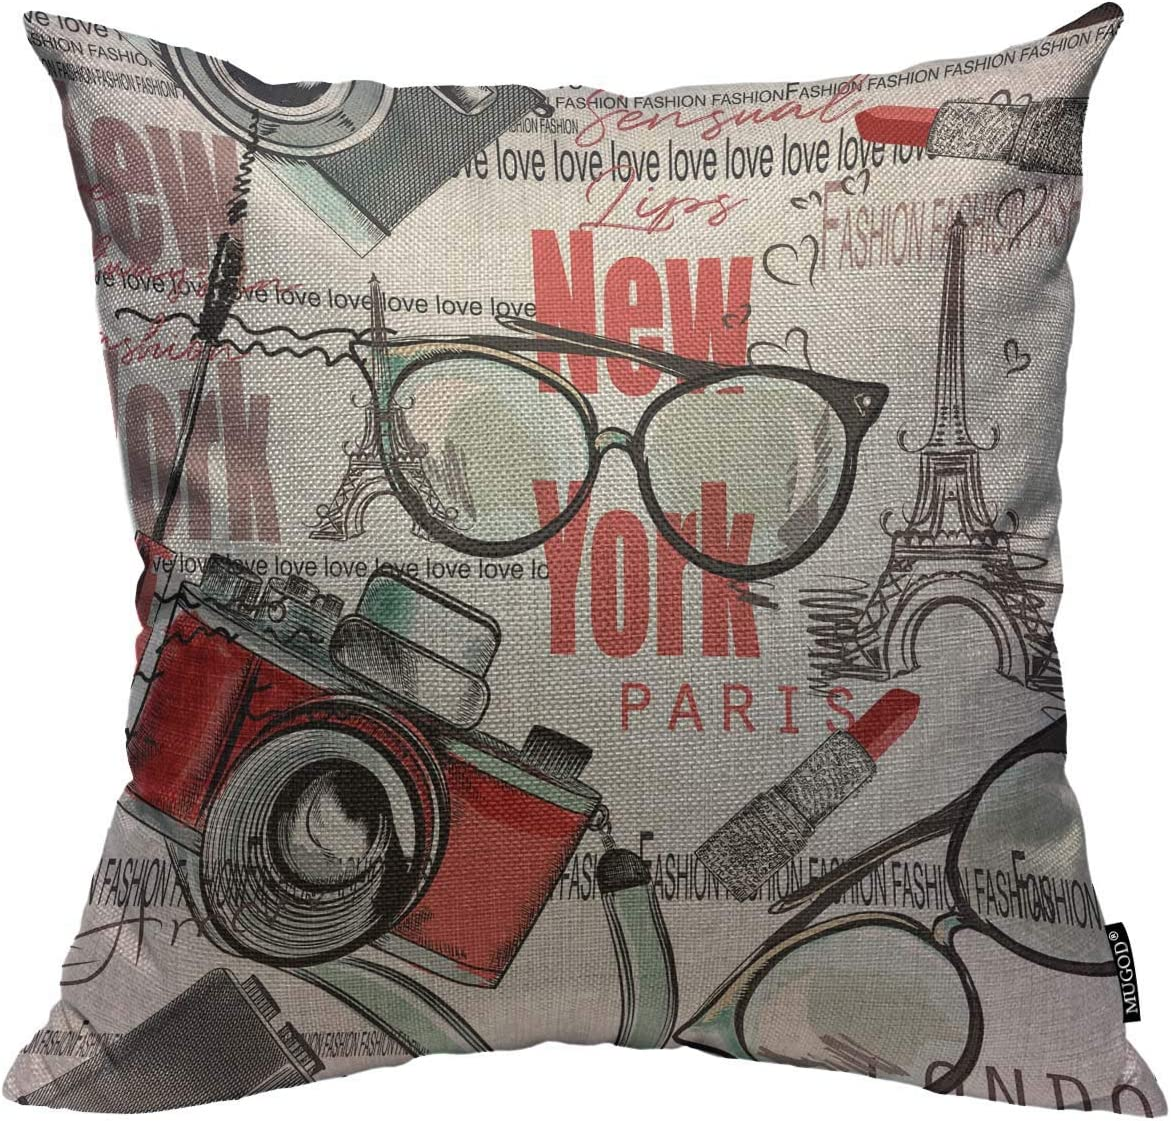 Amazon Com Mugod Fashion Vector Pattern Throw Pillow Cover Lipstick Camera Glasses Words New York London Paris Decorative Square Pillow Case For Home Bedroom Living Room Cushion Cover 18x18 Inch Home Kitchen